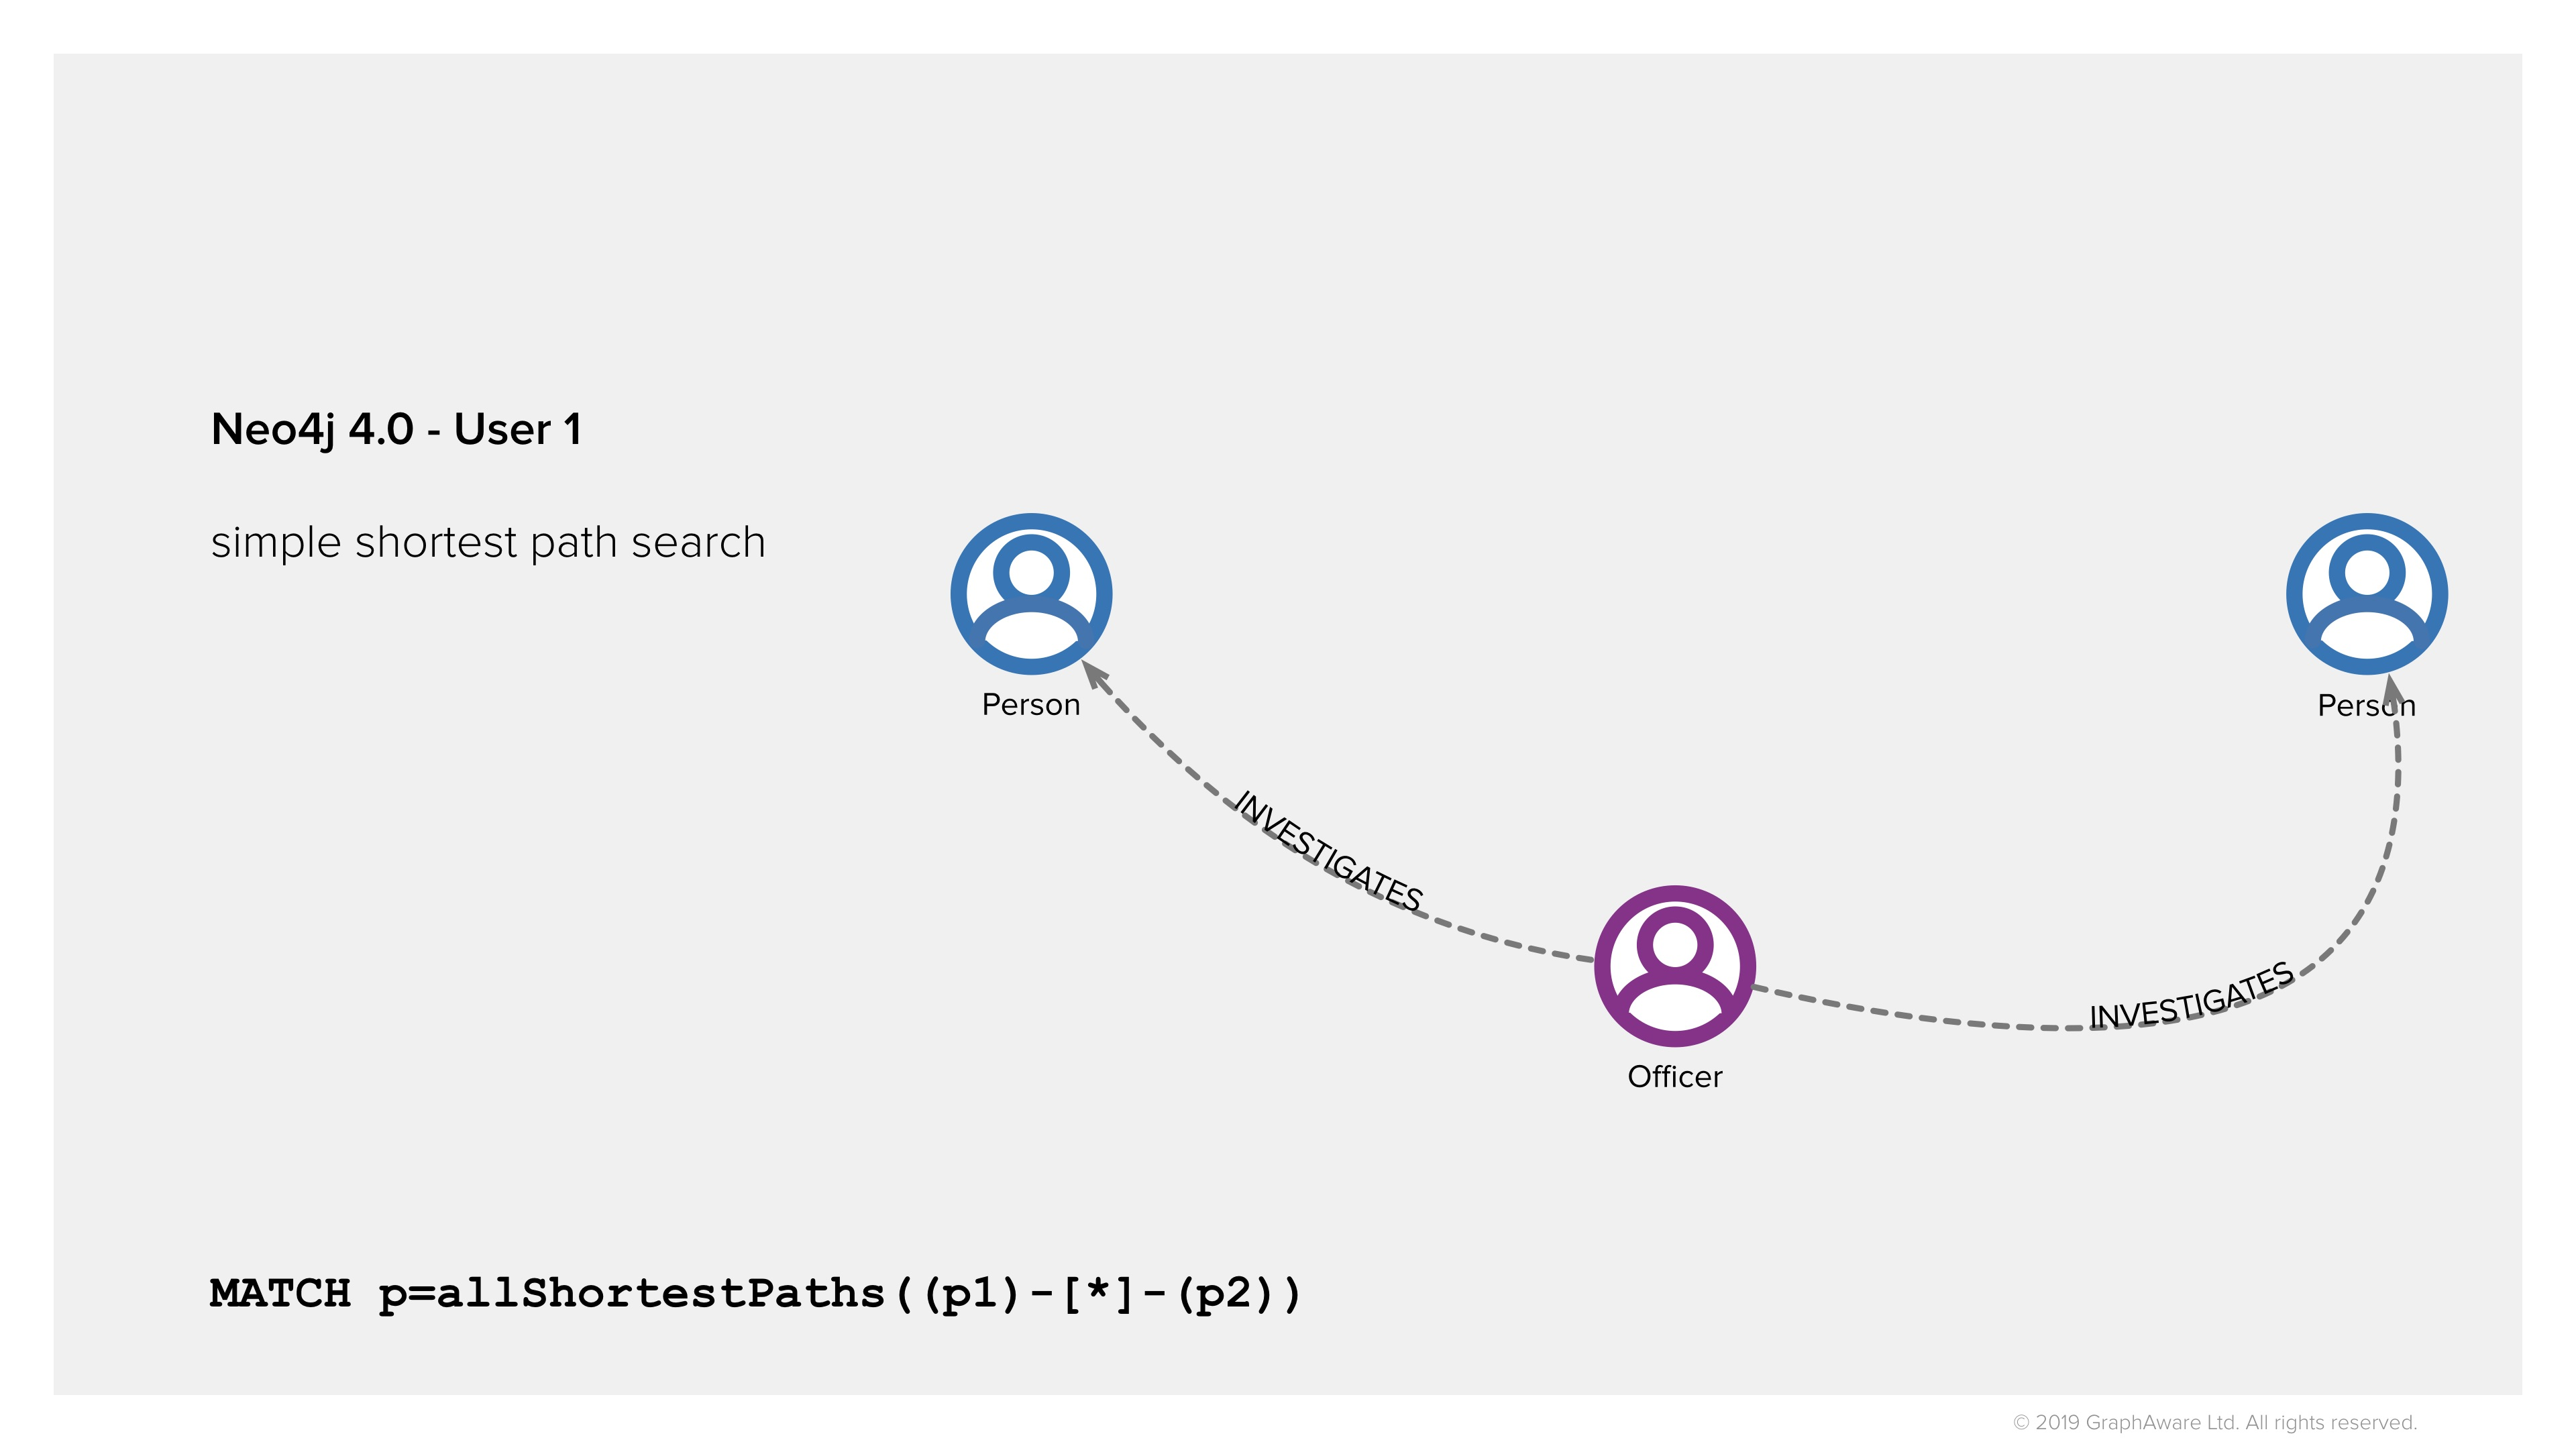 Find shortest paths in Neo4j 4.0 for law enforcement - all privileges